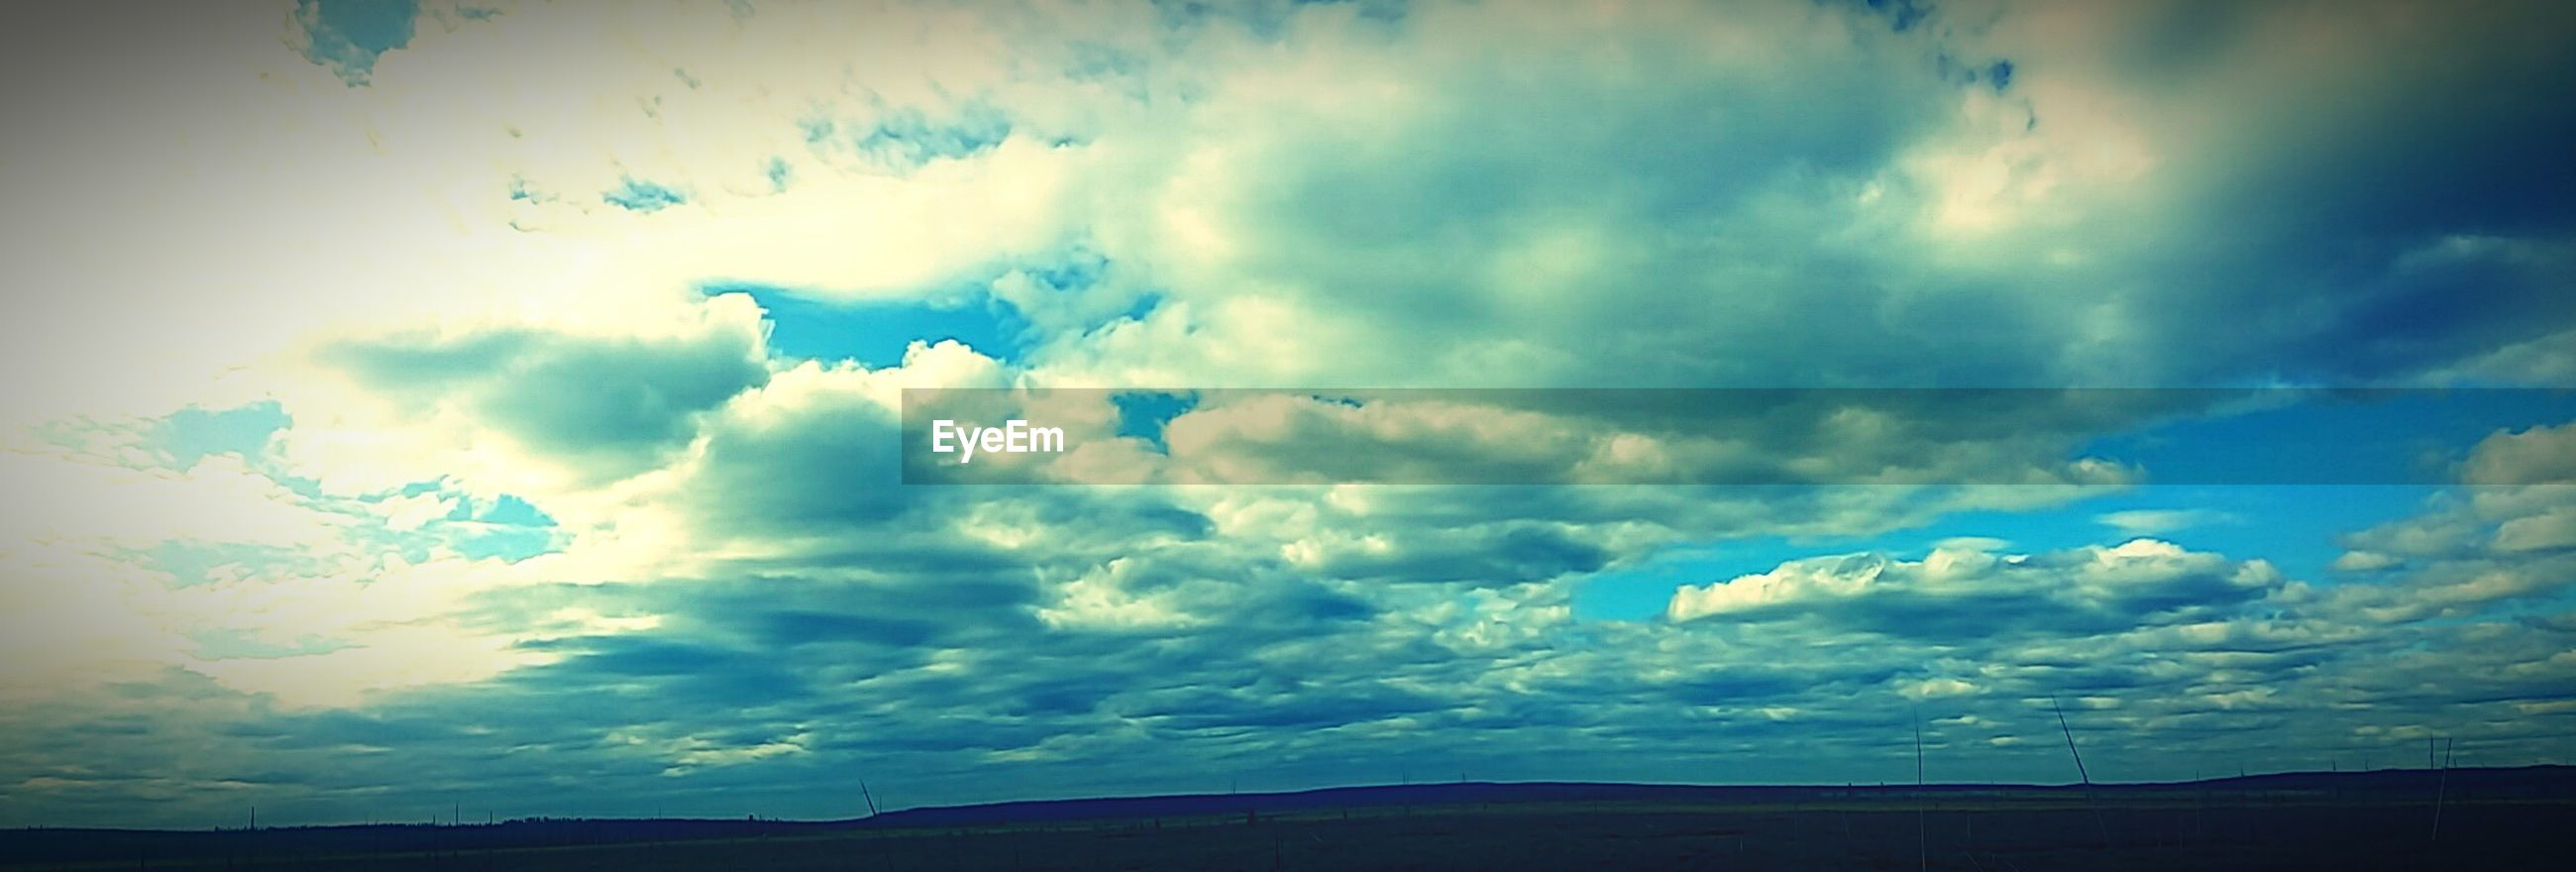 cloud - sky, sky, beauty in nature, low angle view, nature, scenics, outdoors, no people, tranquility, day, storm cloud